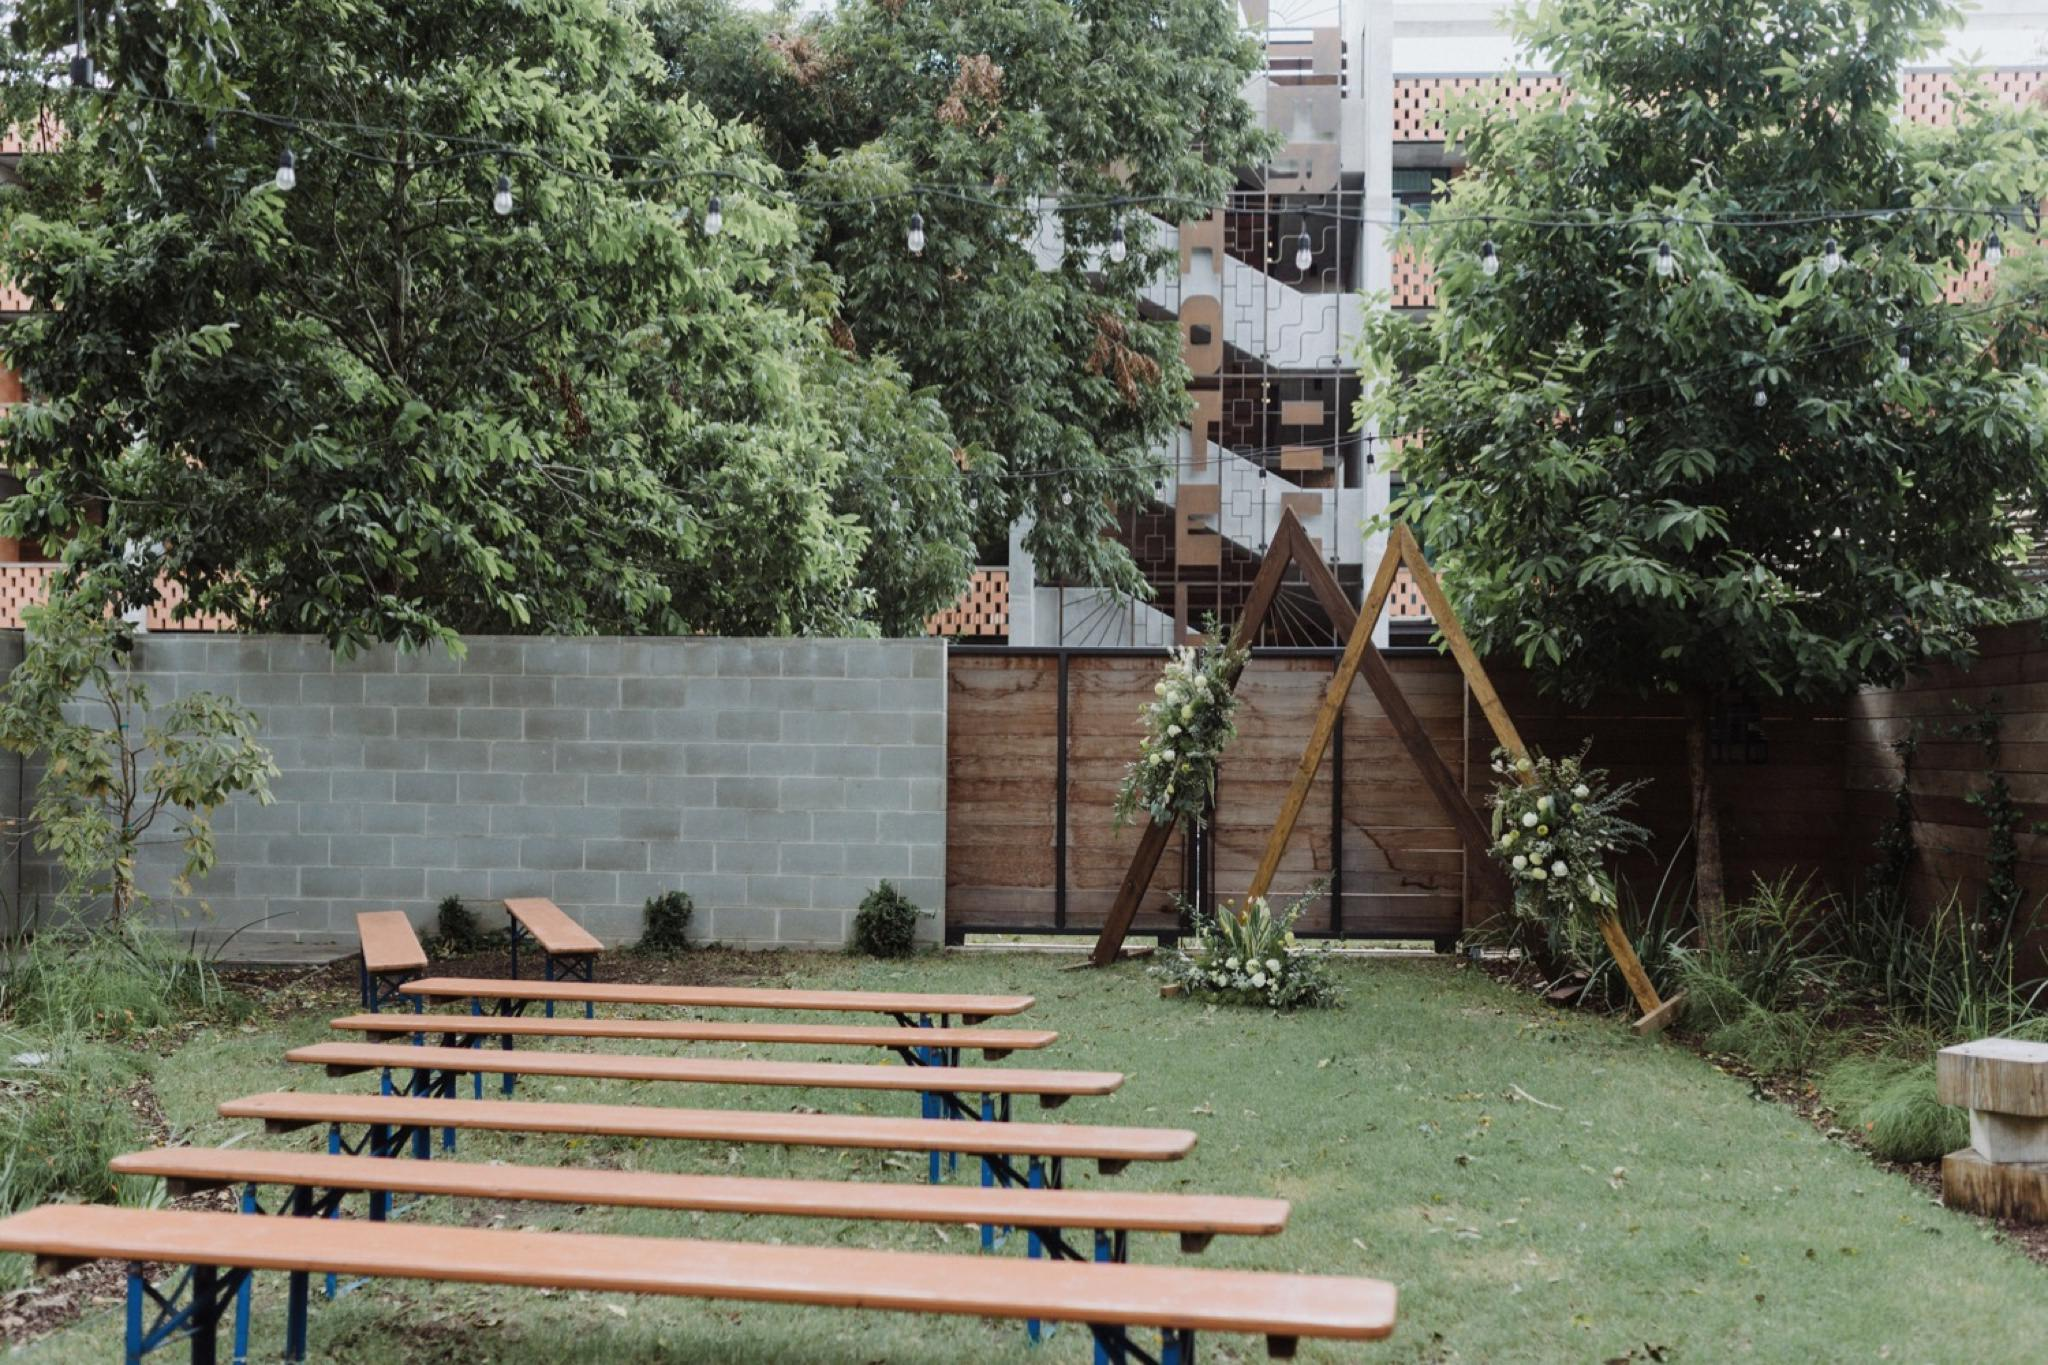 Unique ceremony layout for a backyard Carpenter Hotel Wedding on South Lamar